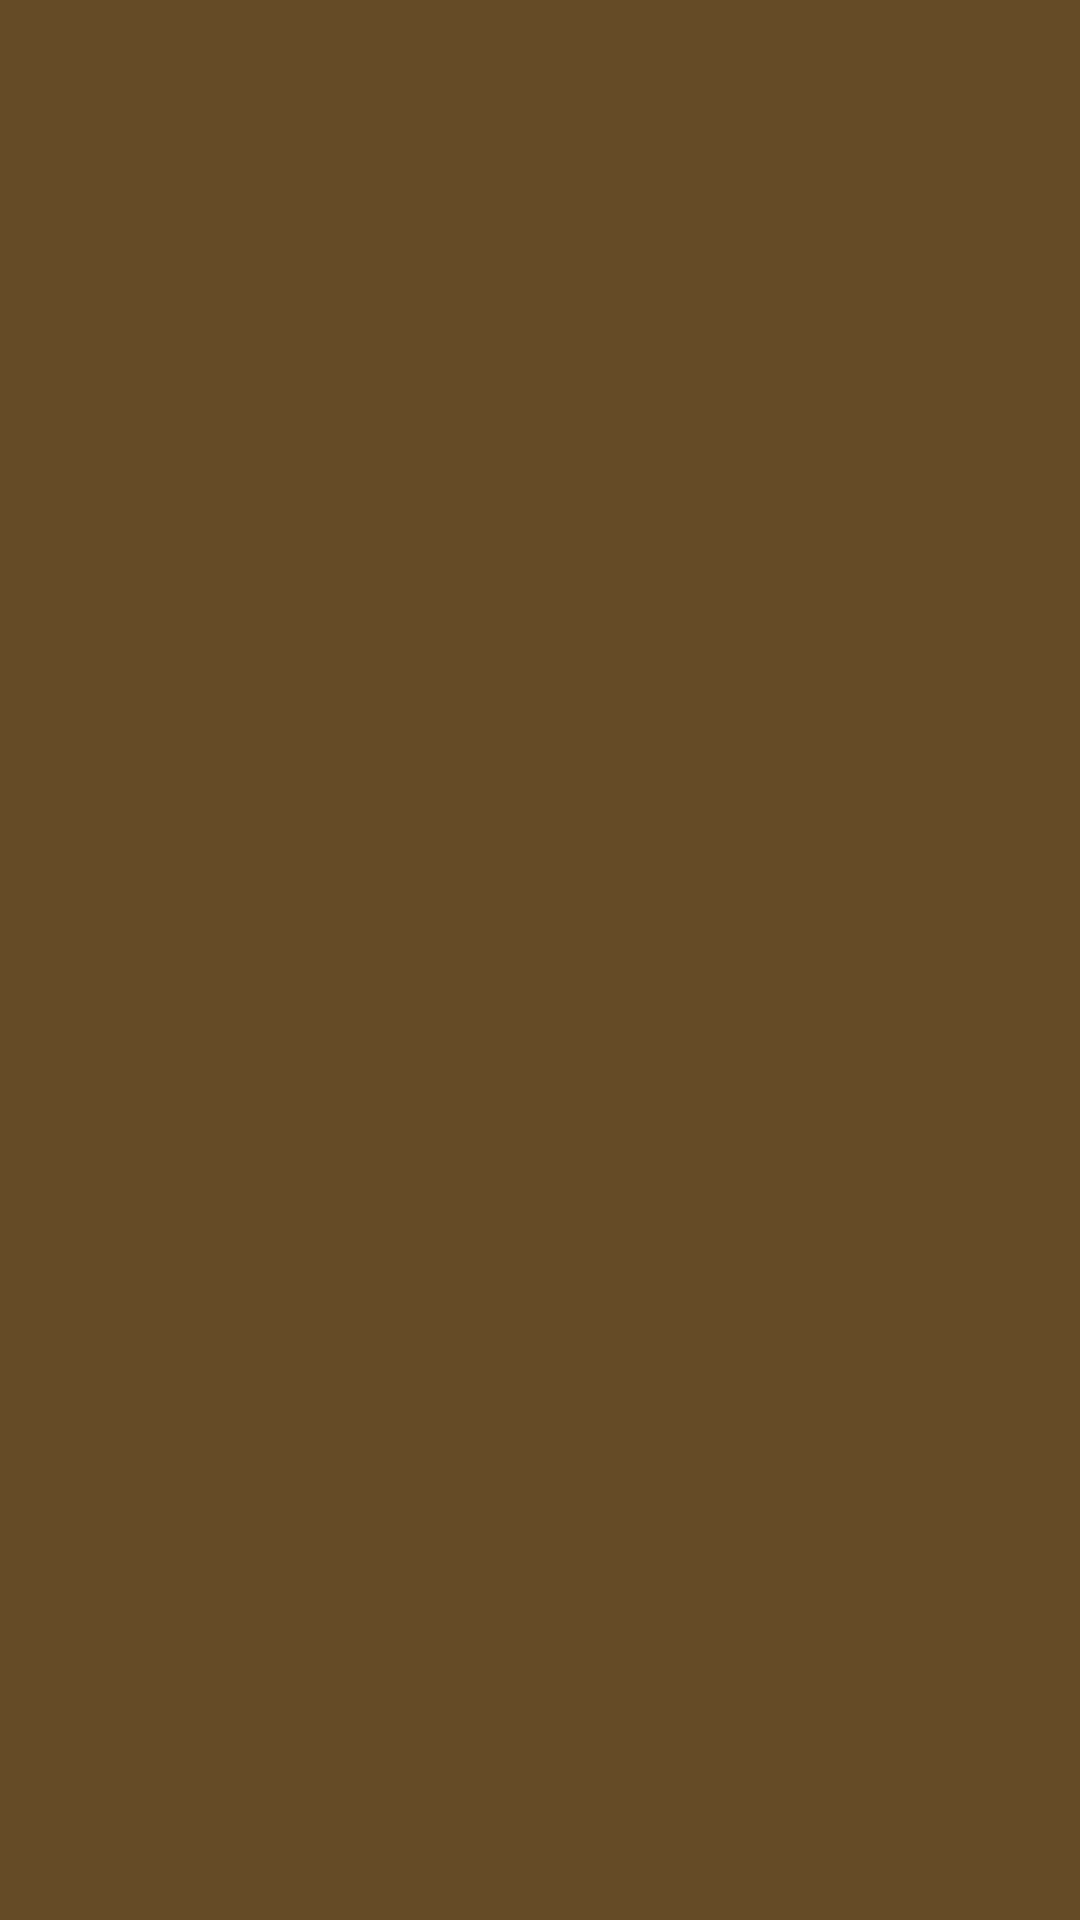 1080x1920 Donkey Brown Solid Color Background